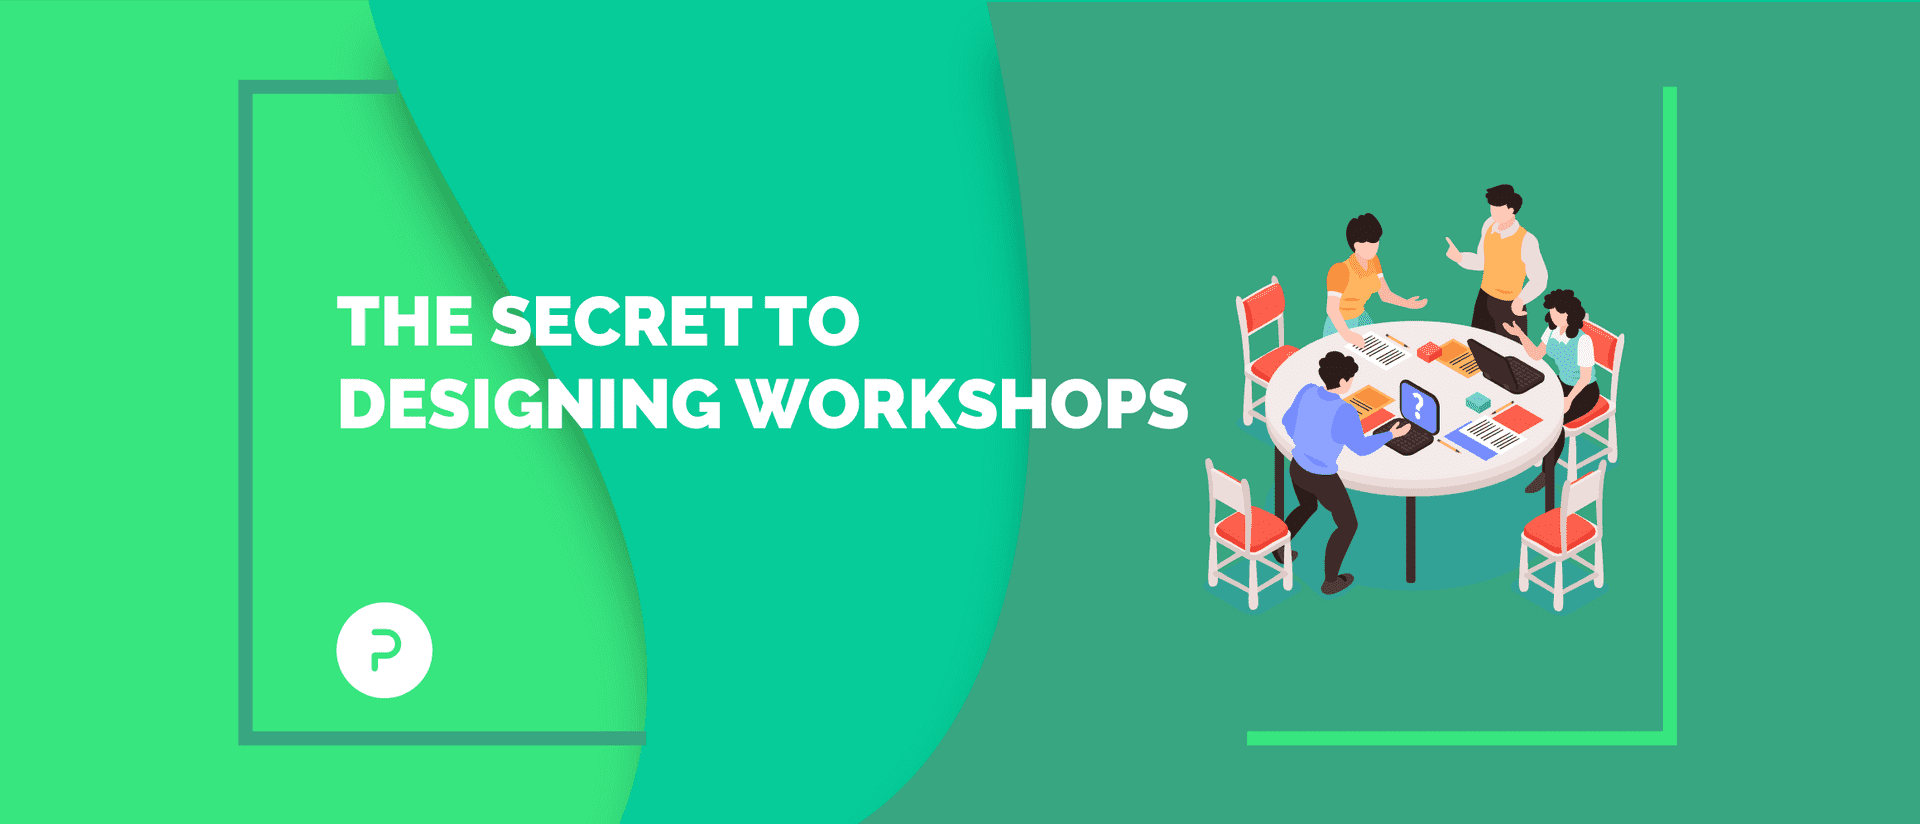 The One Secret Ingredient to Take Your Workshops to the Next Level